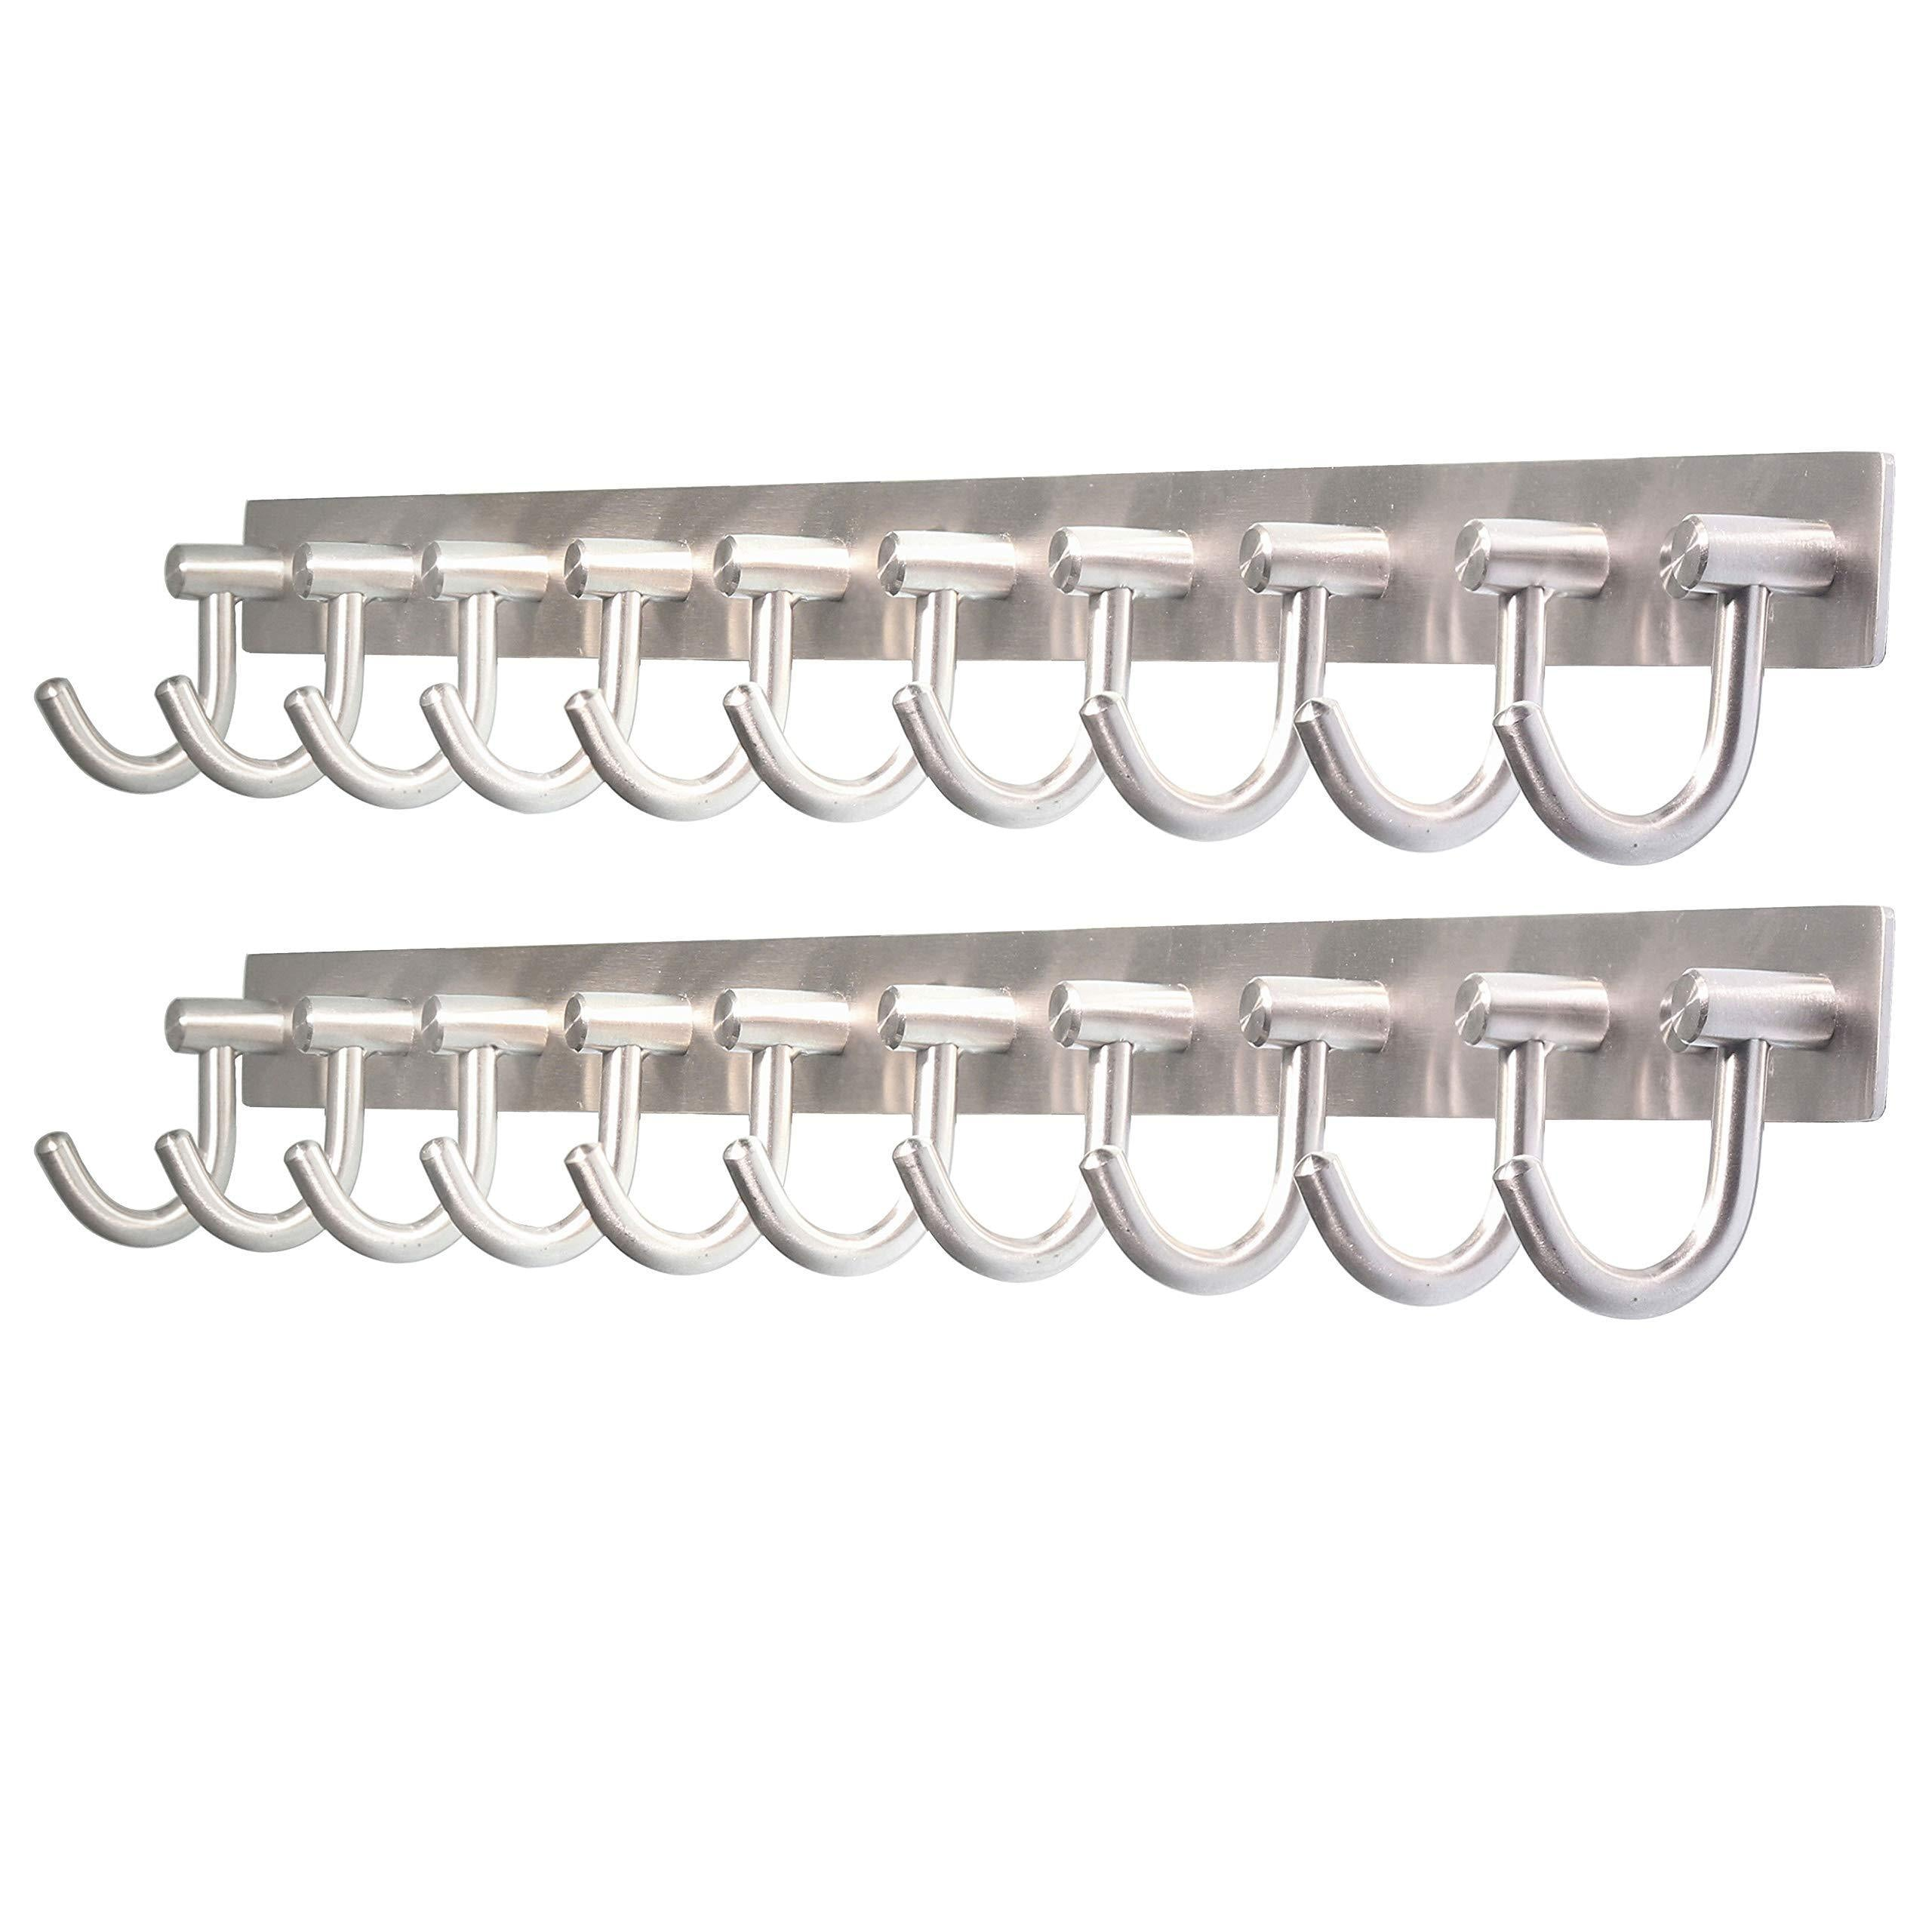 Save on webi wall mounted coat hook rack 30 inch 10 hooks heavy duty stainless steel 304 hook rail for bedroom bathroom foyer hallway entryway brushed finish 2 packs